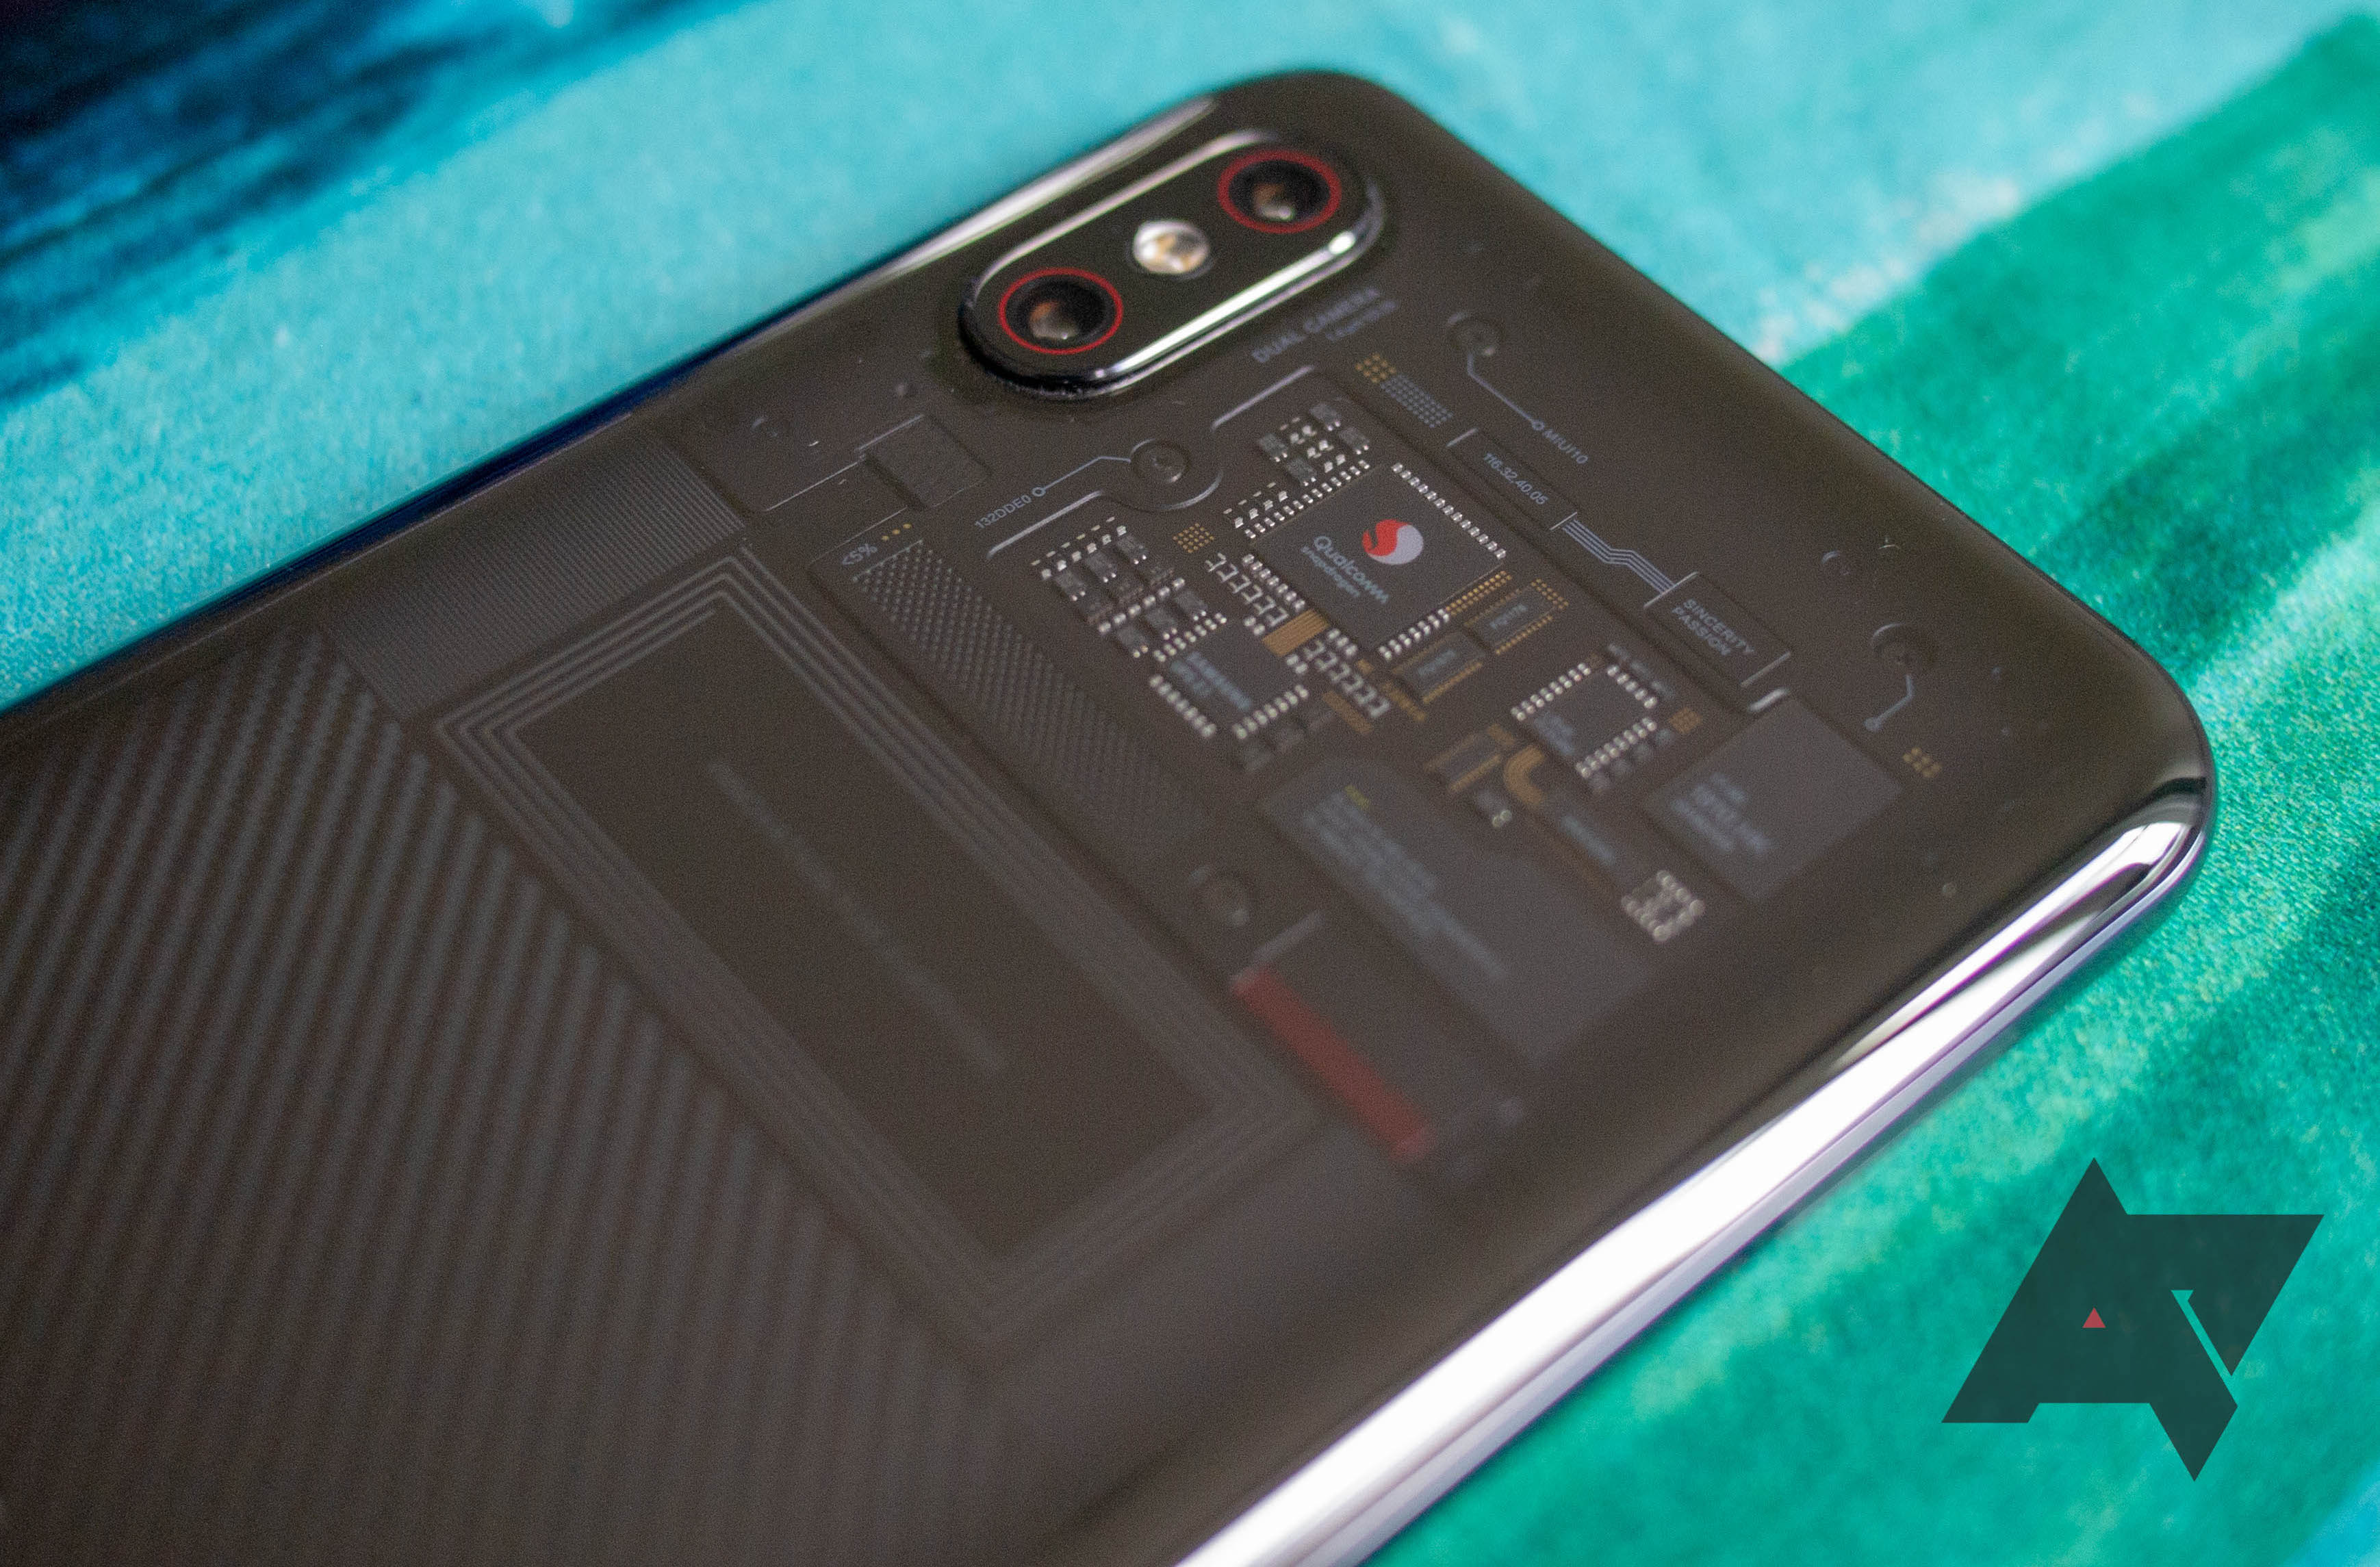 I Mostly Used The Mi 8 Pro During This Review But You Can Assume All Of Same Points Apply To Cheaper Model Unless Stated Otherwise